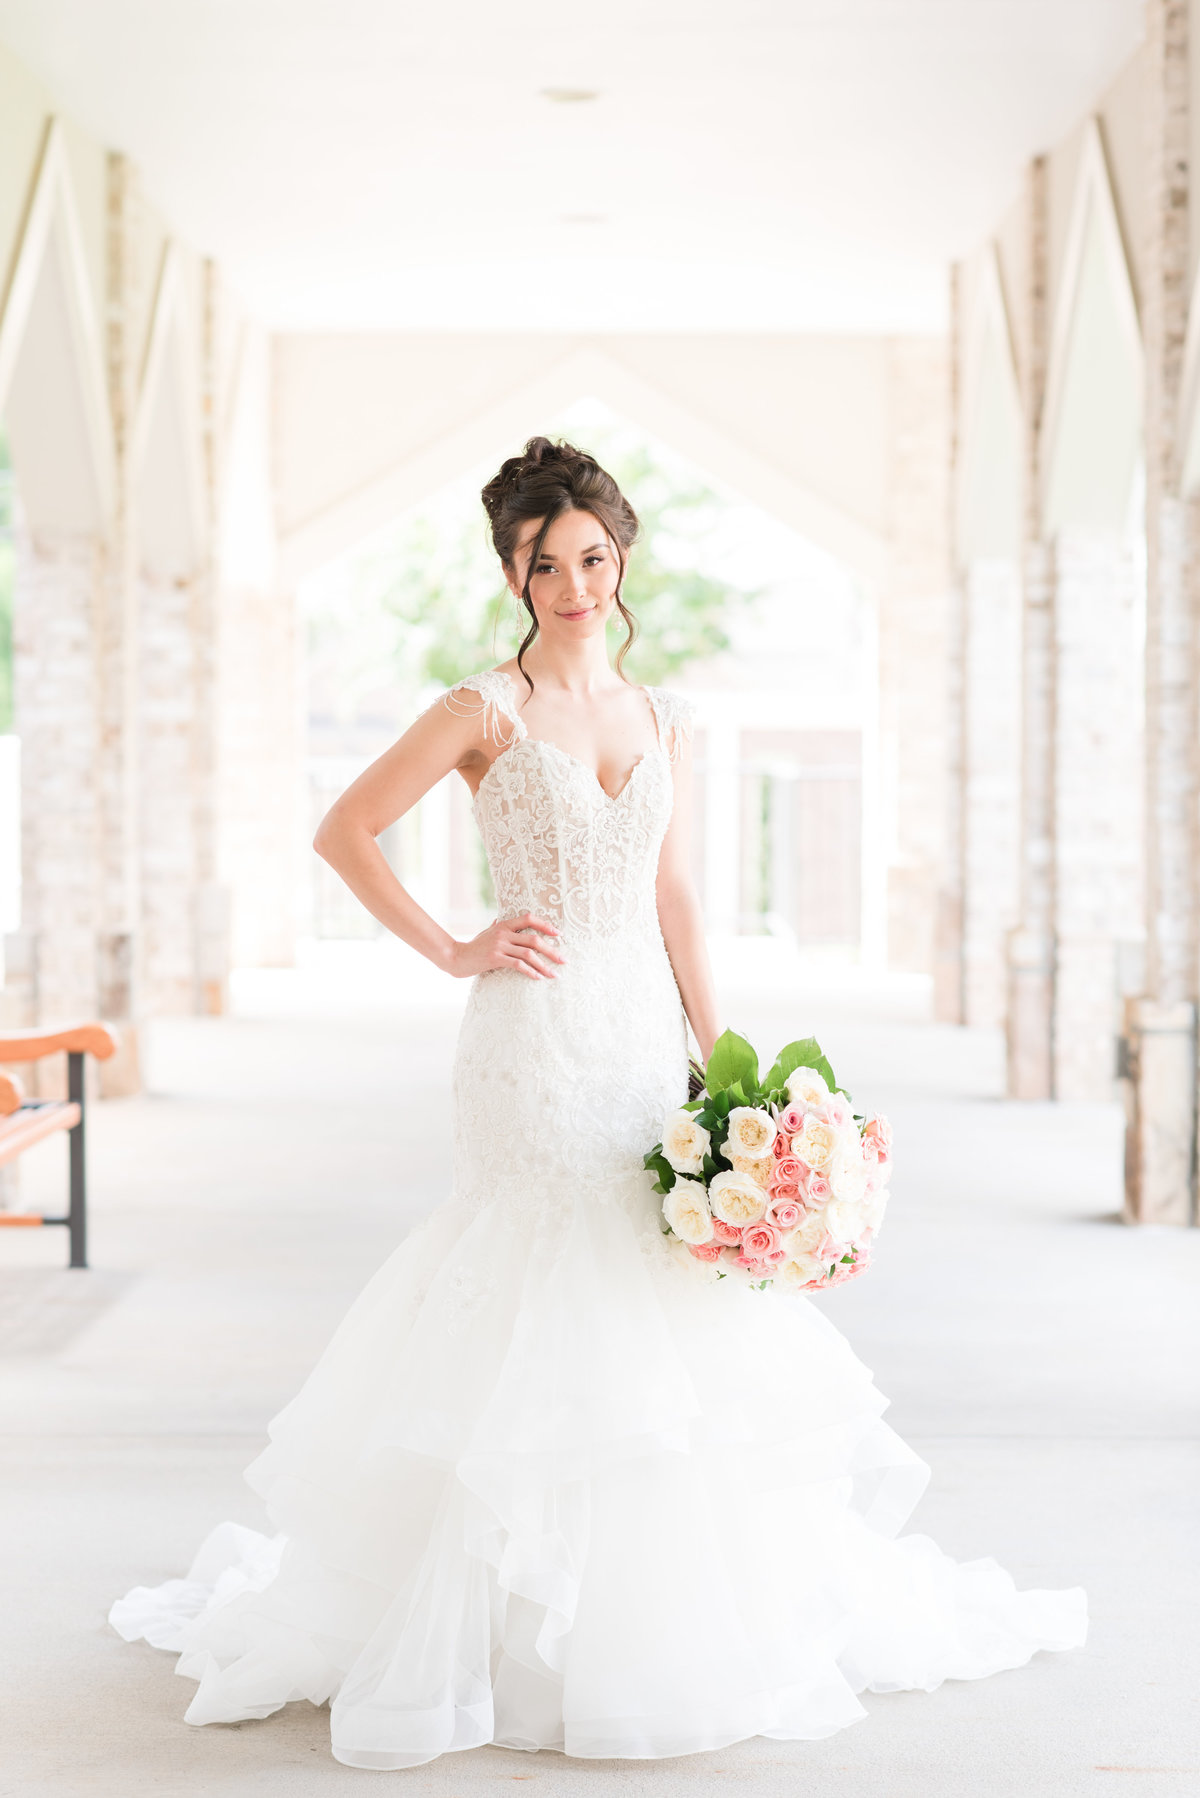 bride wearing a lace corset mermaid style wedding dress with a large pink and cream wedding bouquet surrounded by cream brick arches in Greensboro NC